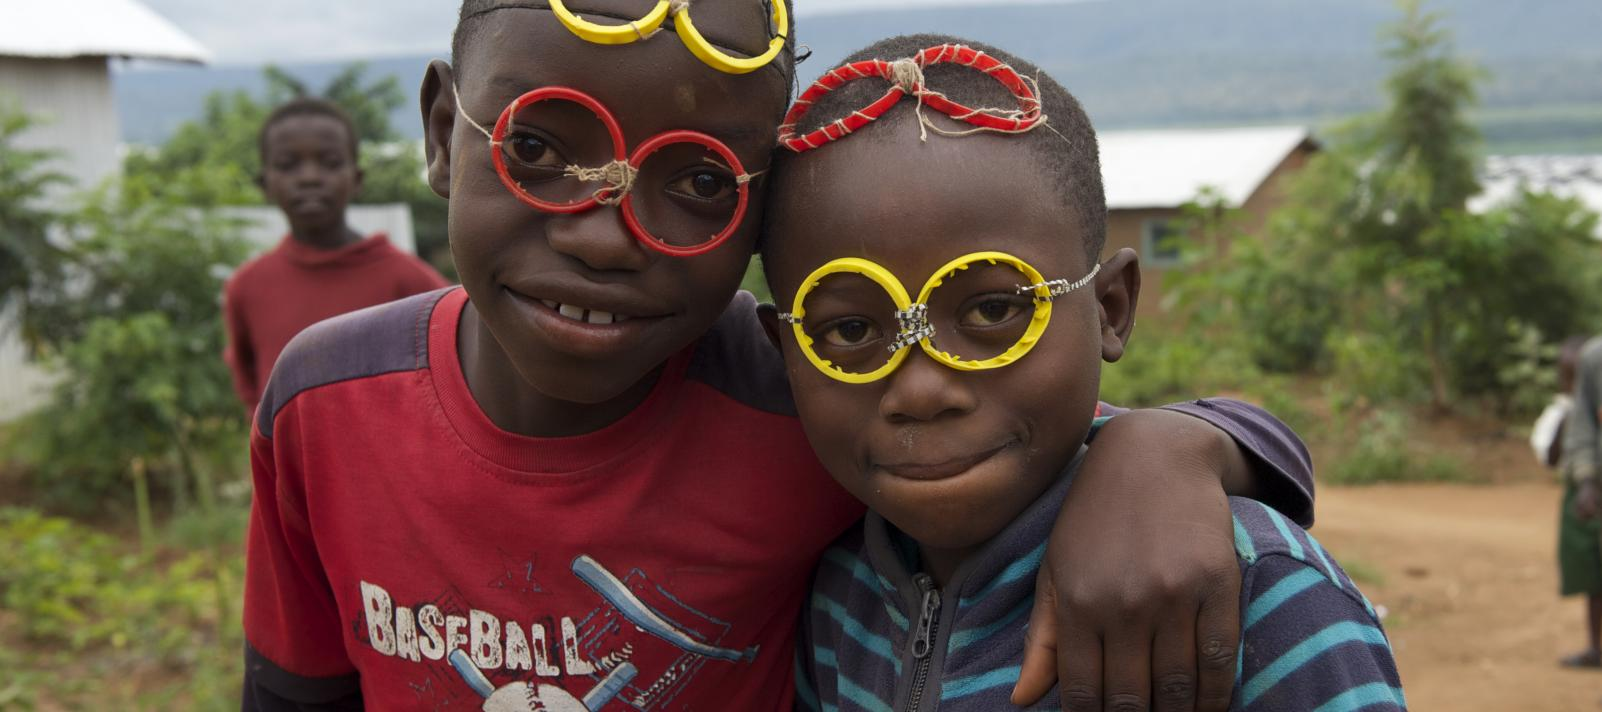 Two young boys smile at the camera wearing homemade glasses